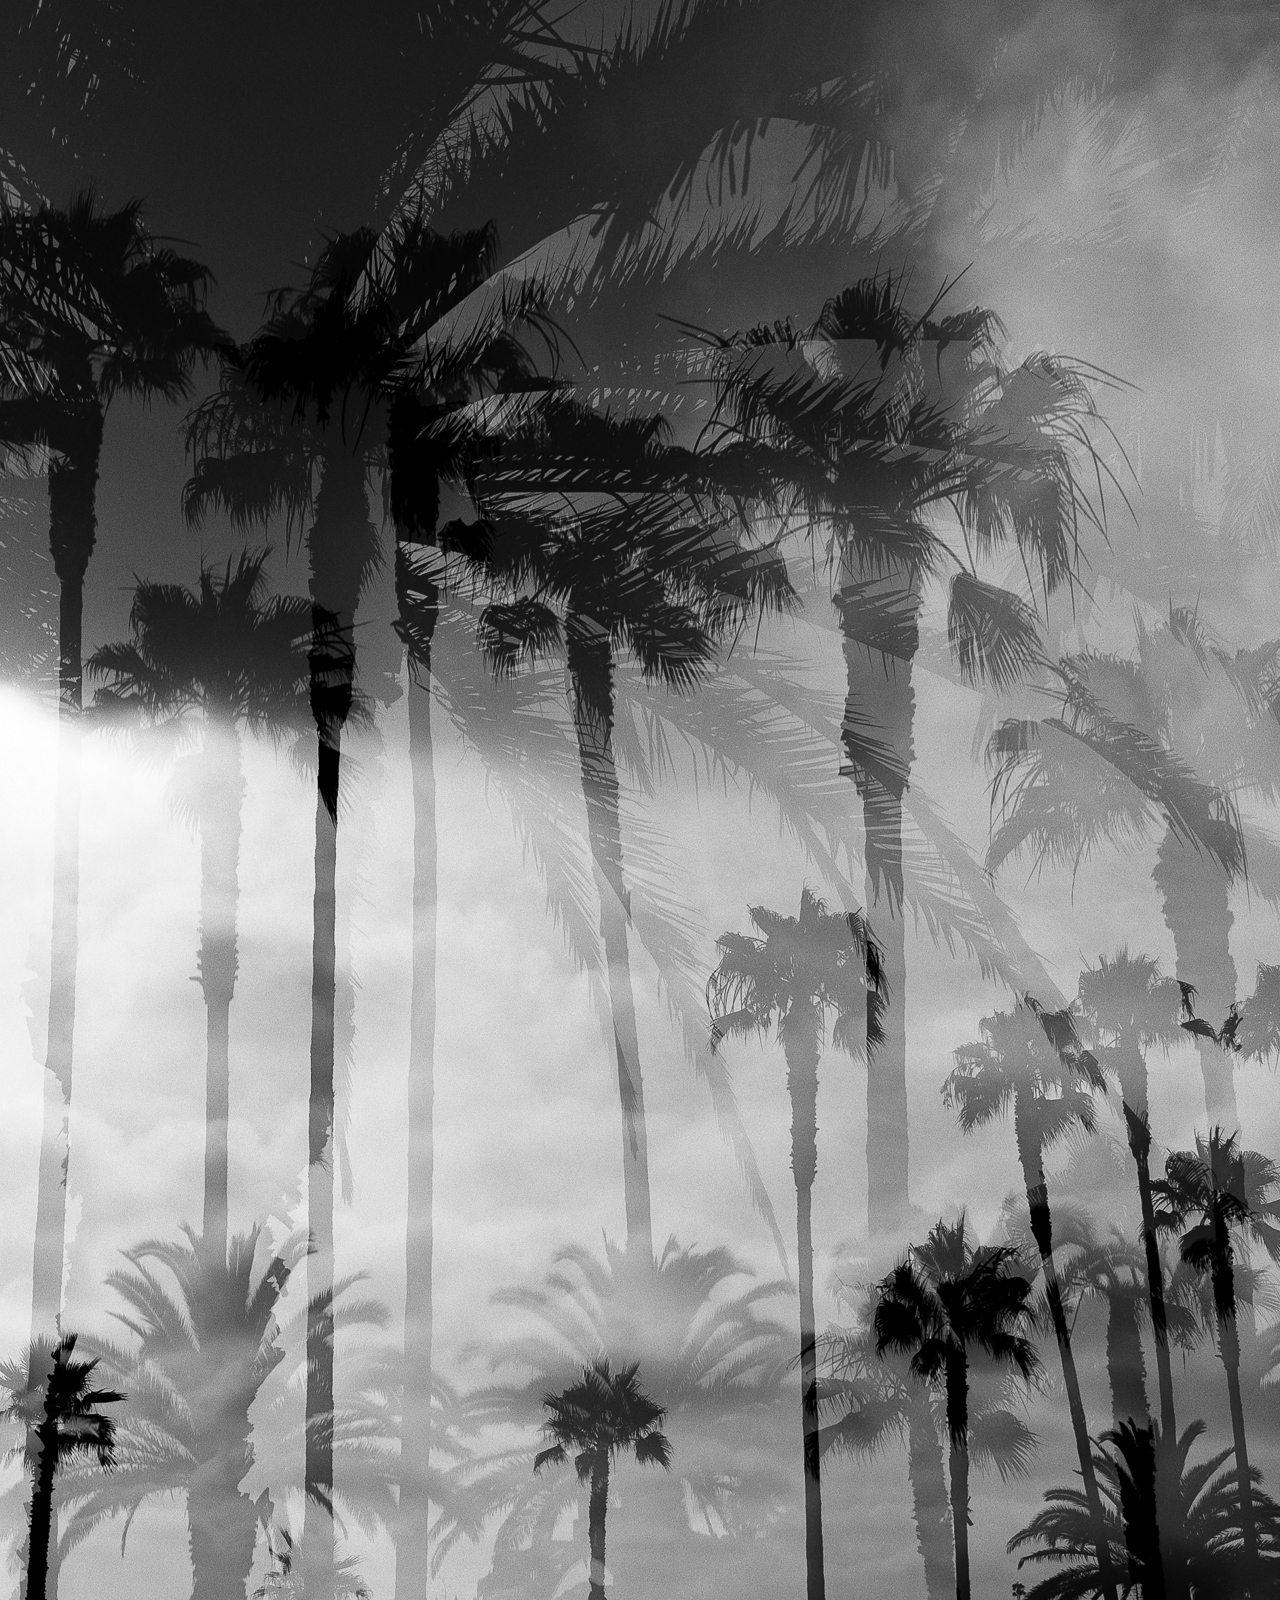 B&W, Black and White, Monochrome, Palm Trees, Palms Collection, Plants, Tree, Trees, photo